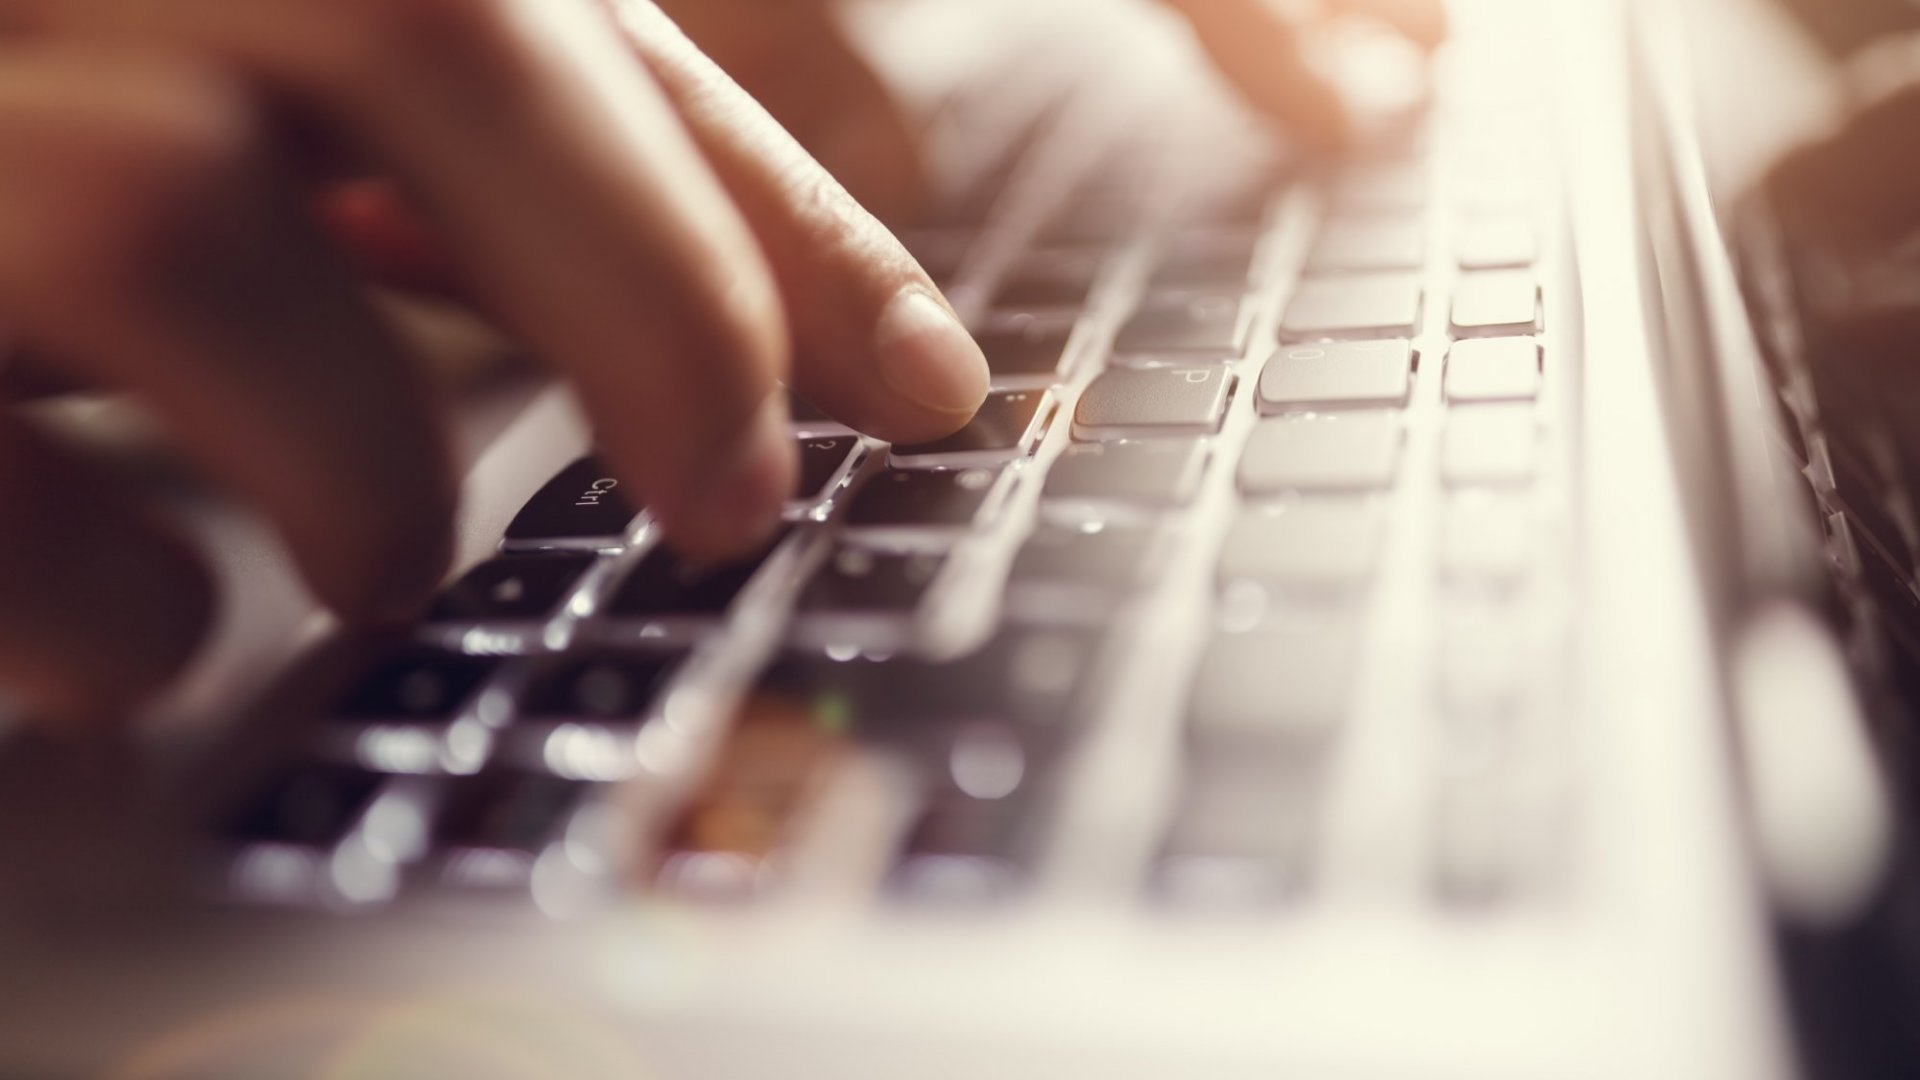 Step-by-Step Guide to Finding the Best Search Terms for Your Business